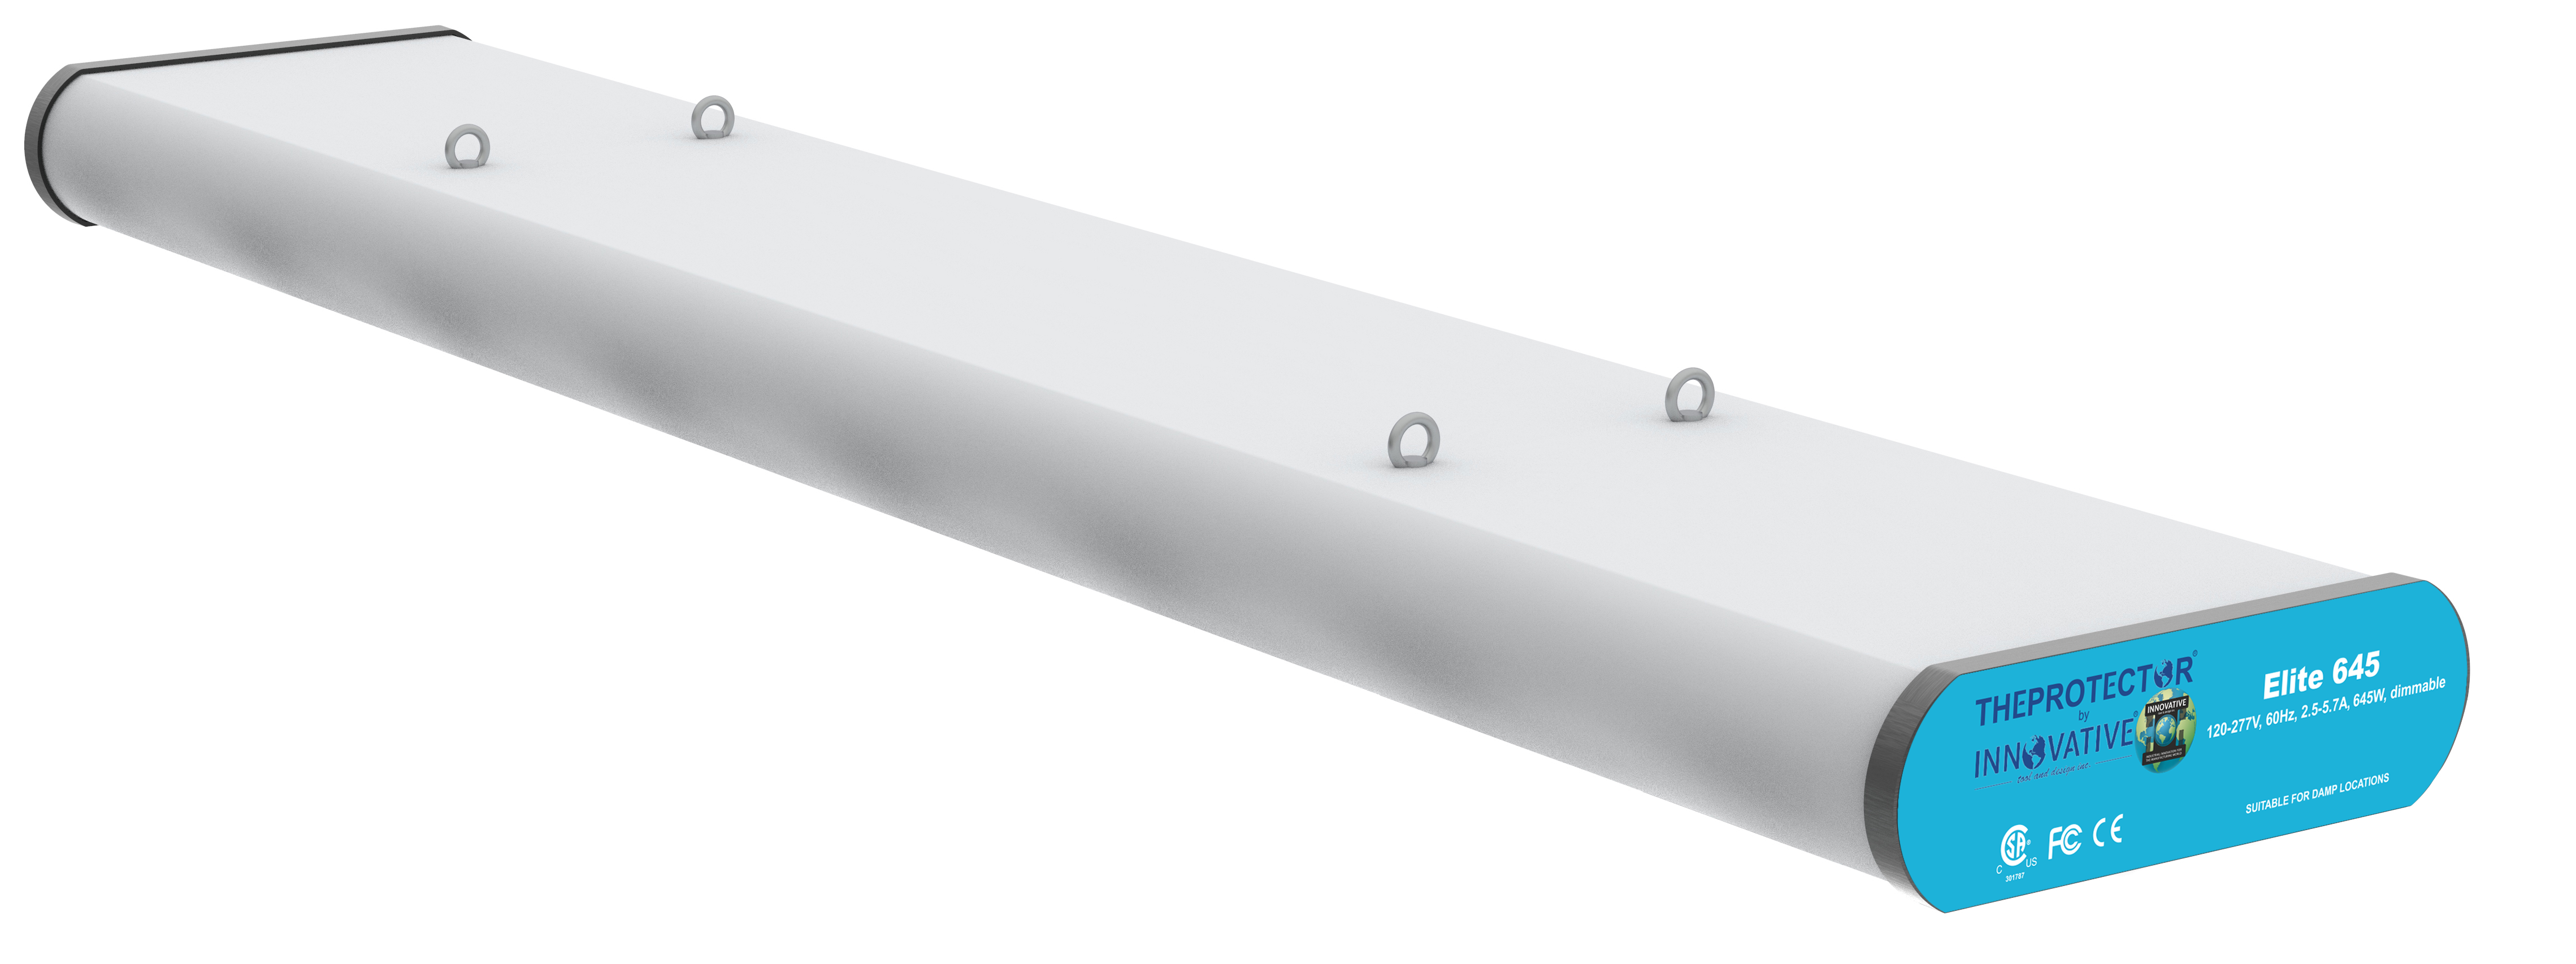 Picture of ELITE 645w LED LIGHT